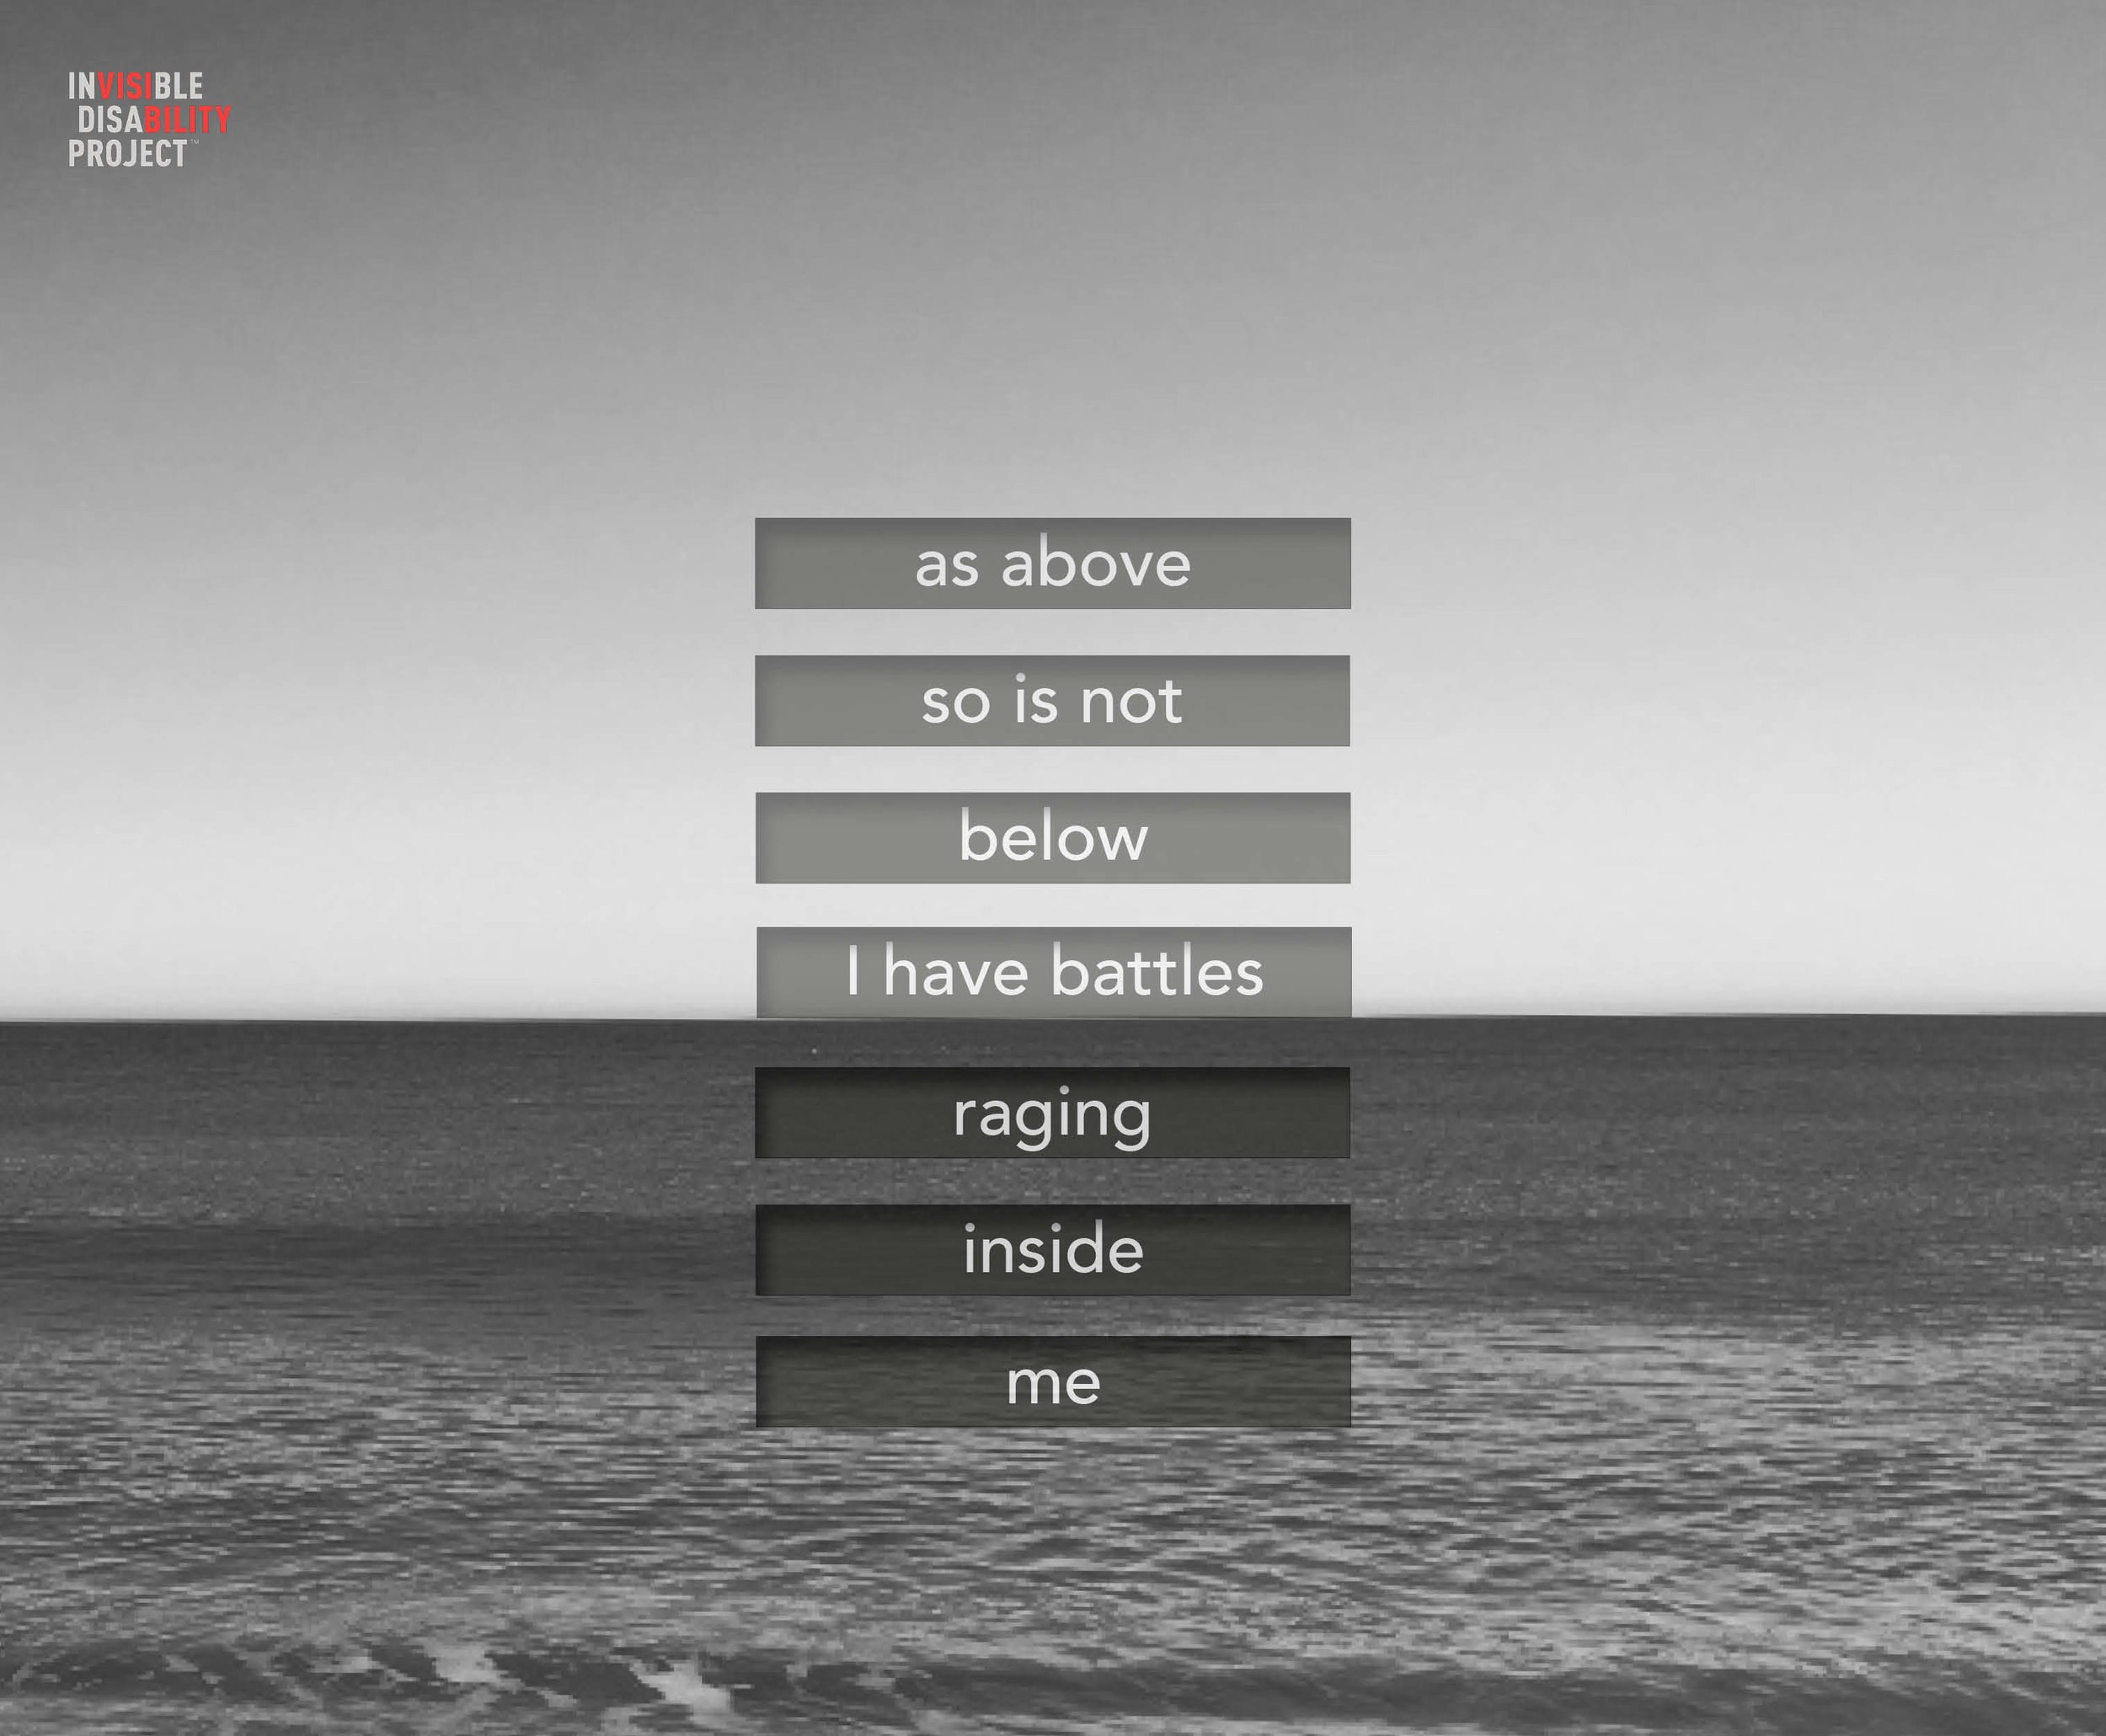 As above, so is not below, I have battles raging inside me.